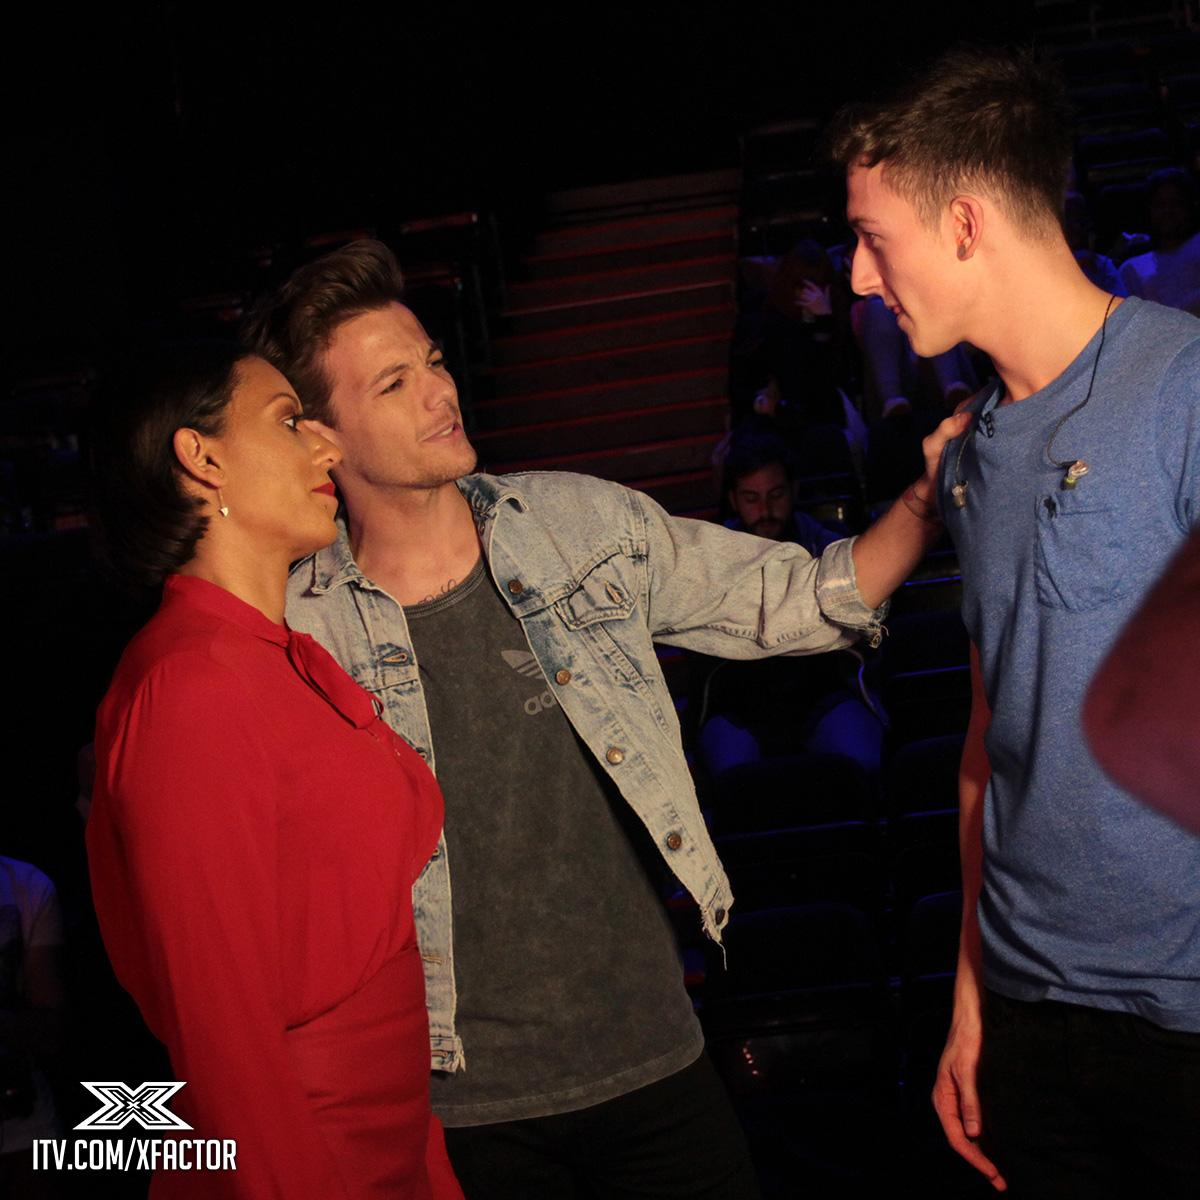 Oh look who's back with post-rehearsal advice for @jwaltonmusic... Hi @Louis_Tomlinson 👋 #XFactorFrightNight http://t.co/o8FZosrDAY